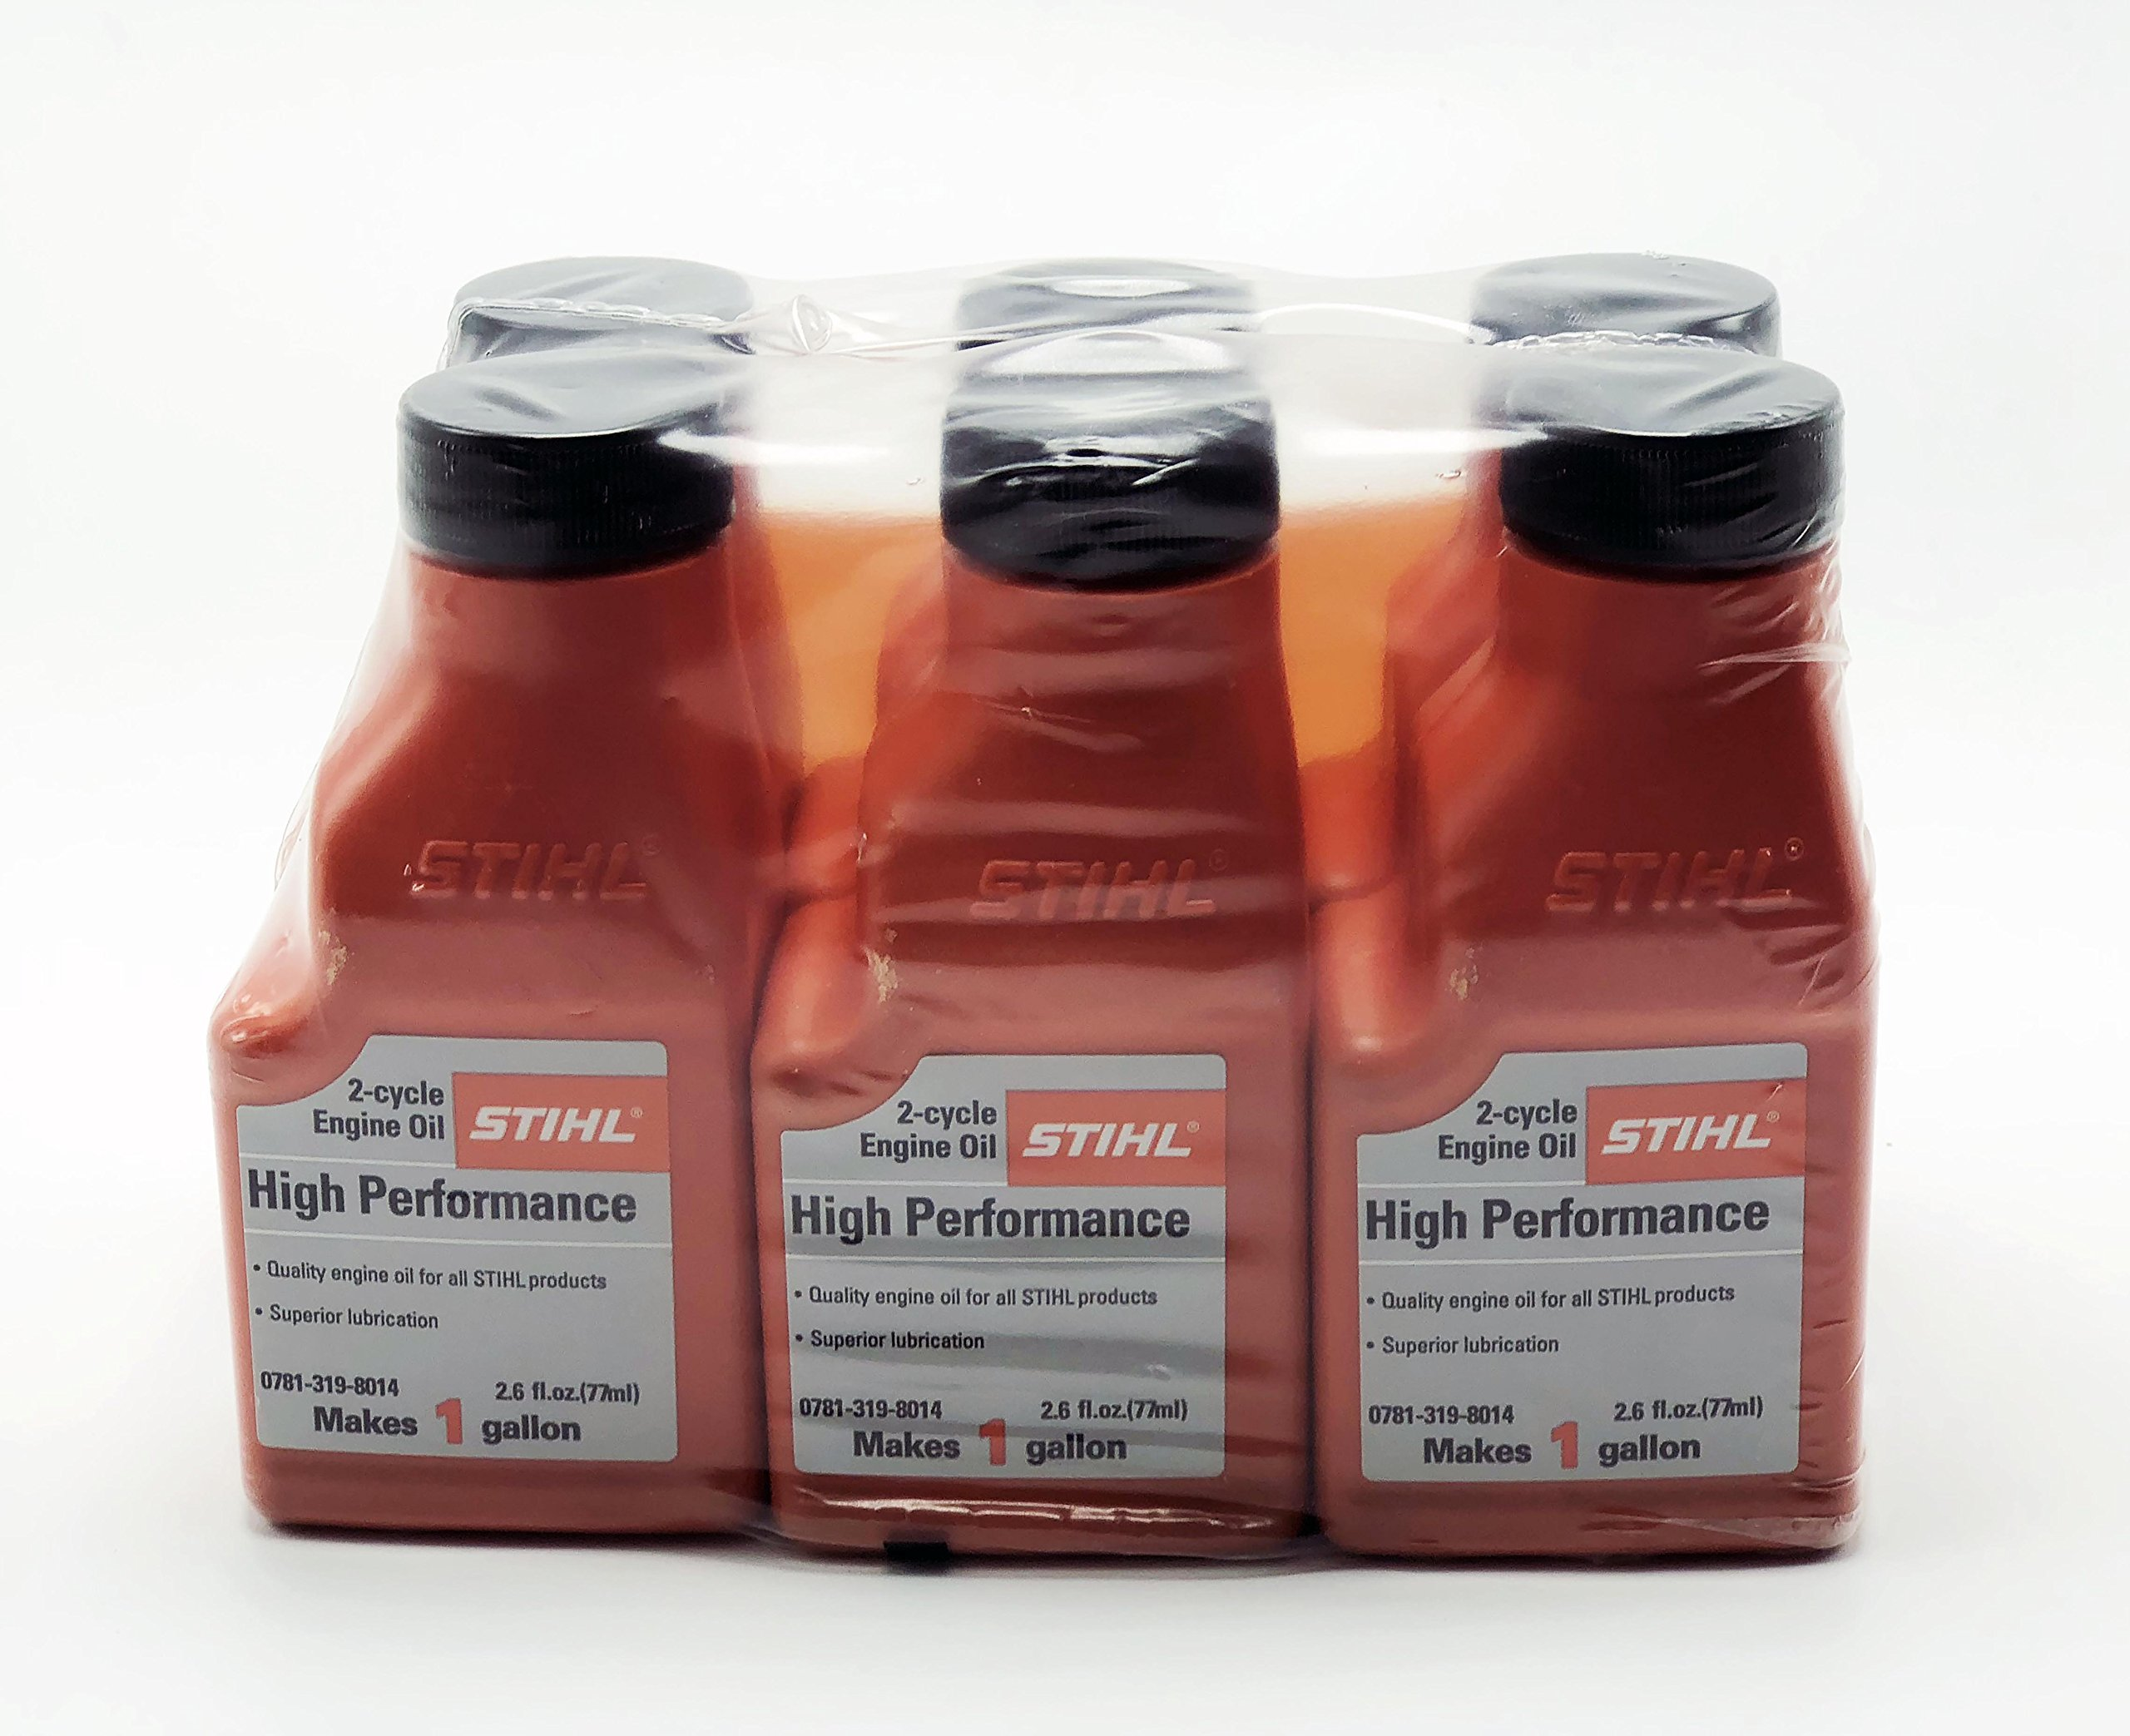 Stihl High Performance 2-Cycle Engine Oil (2.6 Oz) 0781 319 8014-6 Pack by Stihl